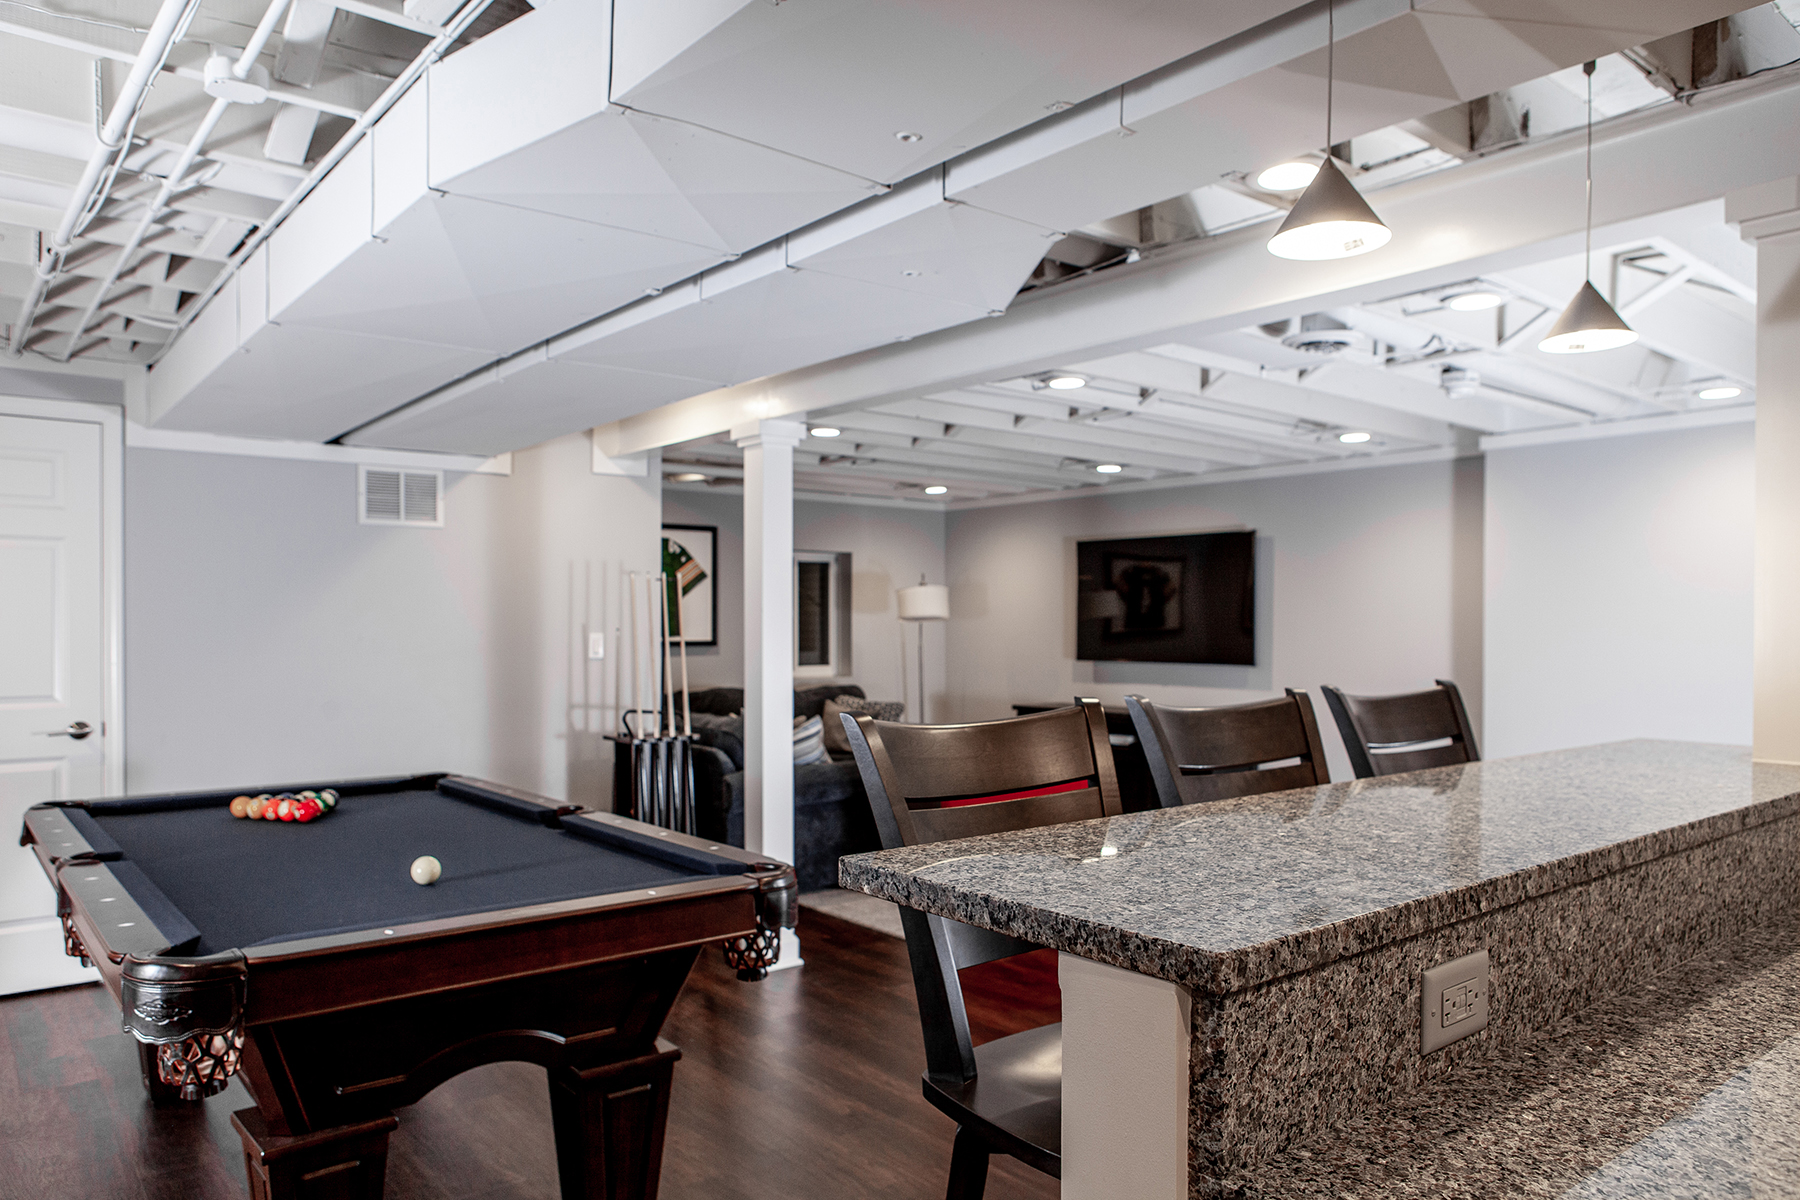 Remodeled basement in Libertyville, Illinois with hardwood floors, pool table, workout room, lounge area and kitchen.